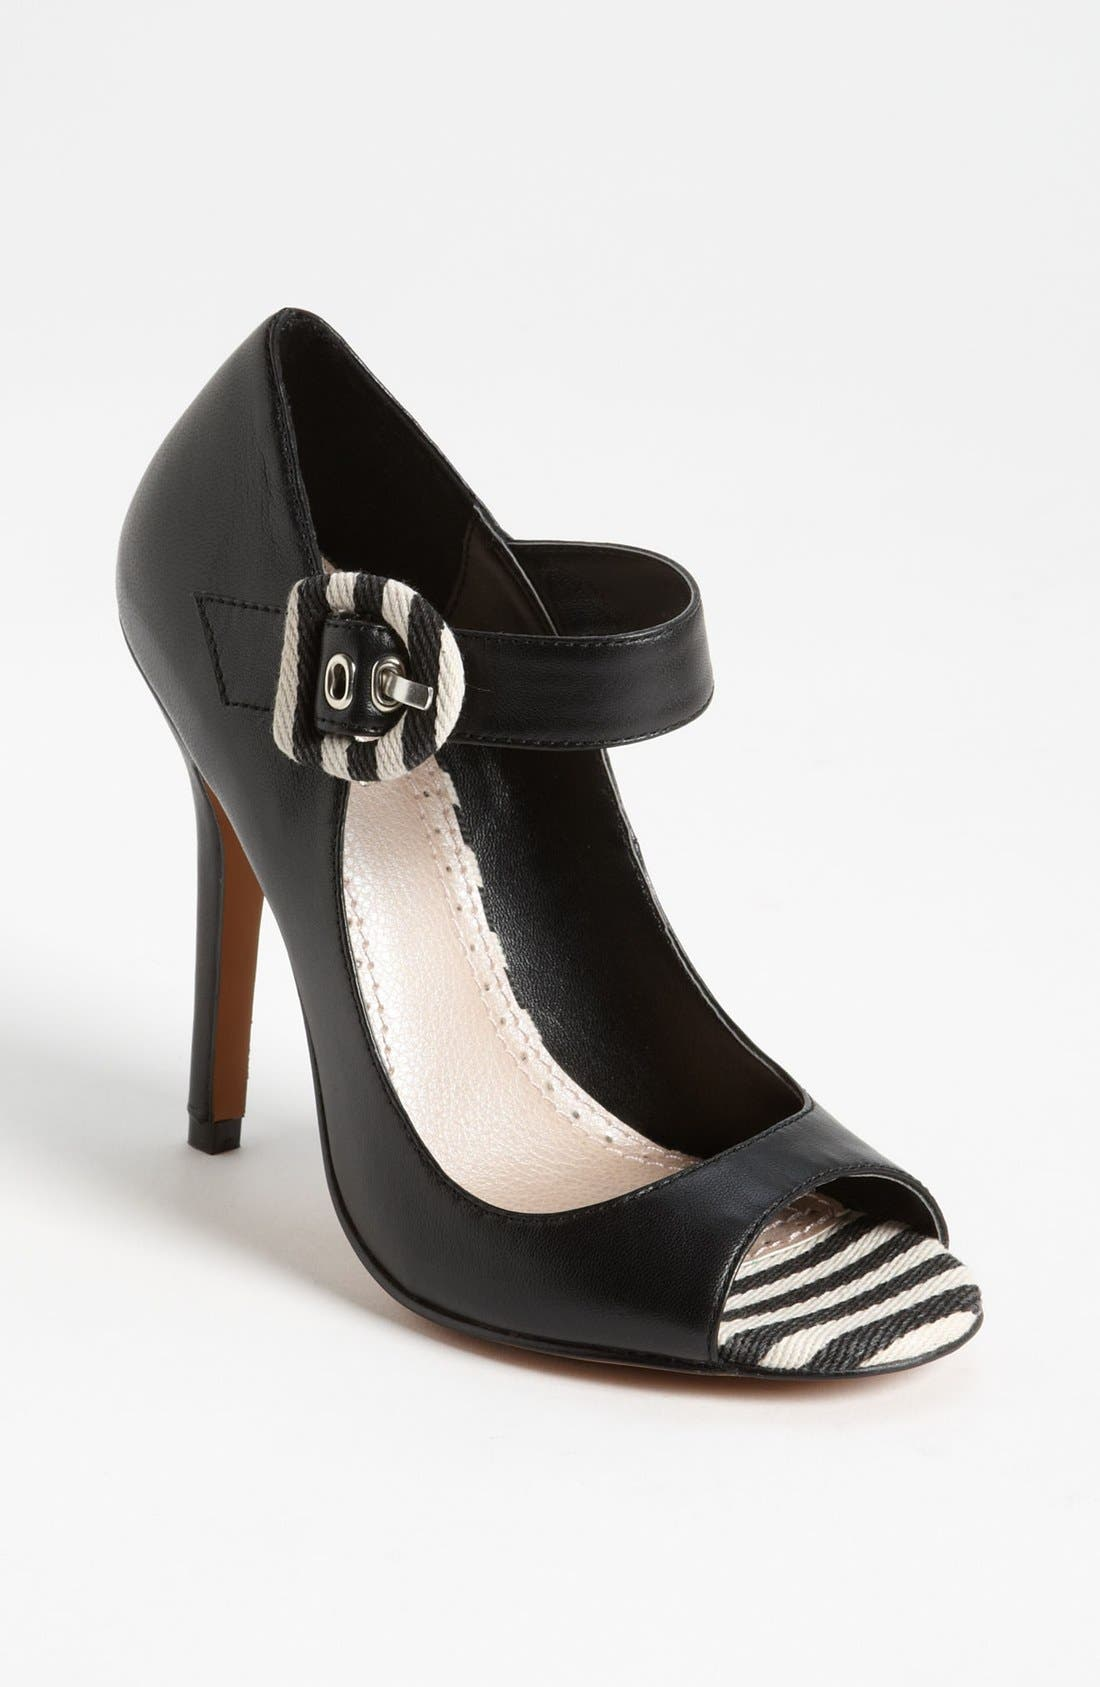 CHARLES BY CHARLES DAVID, 'Tundra' Pump, Main thumbnail 1, color, 001